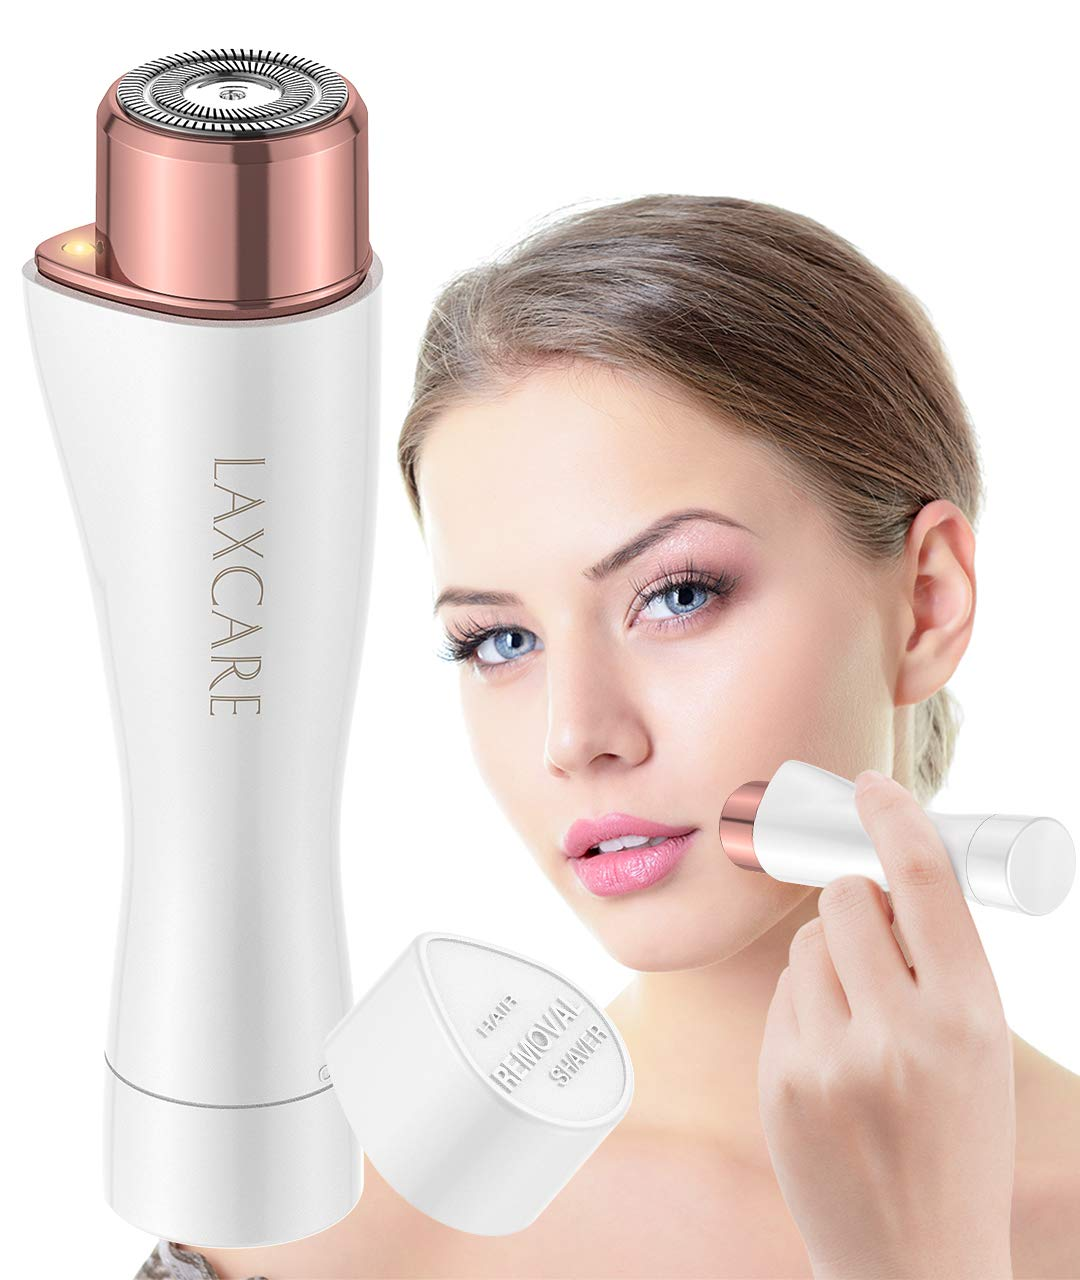 Facial Hair Removal For Women Laxcare Painless Flawless Hair